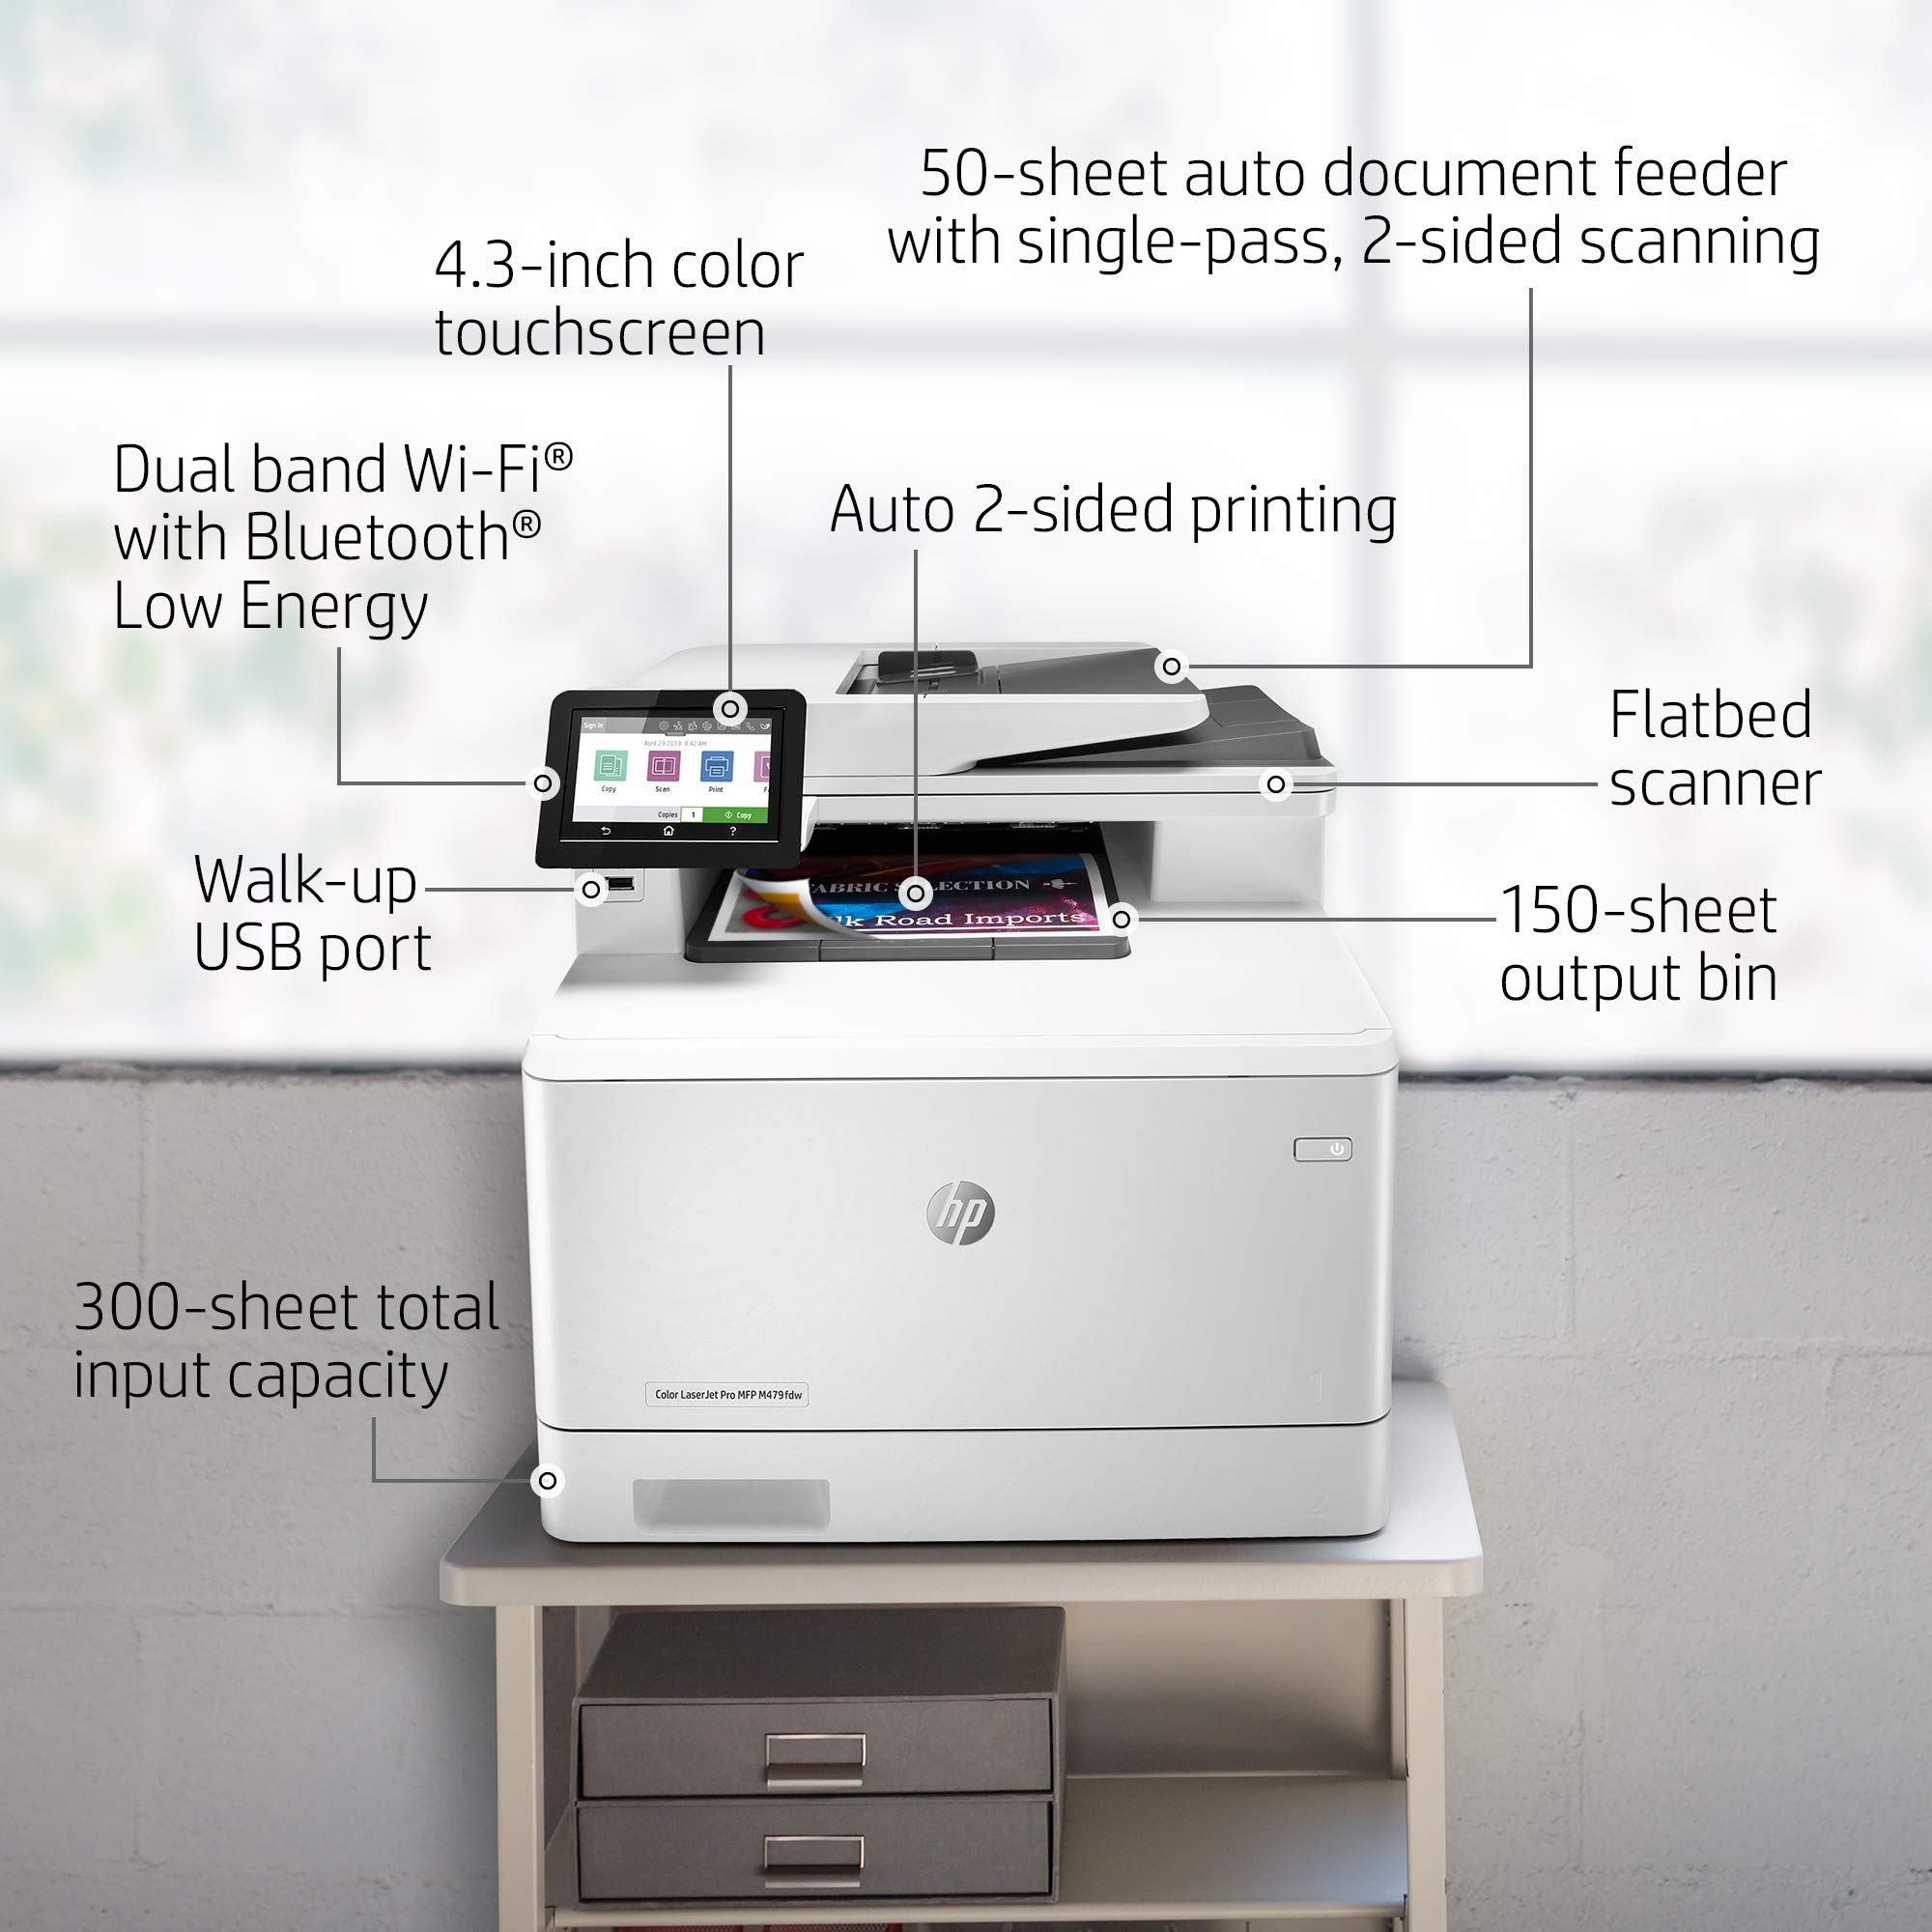 HP Color LaserJet Pro Multifunction M479fdw Wireless Laser Printer with One-Year, Next-Business Day, Onsite Warranty, Works with Alexa (W1A80A)